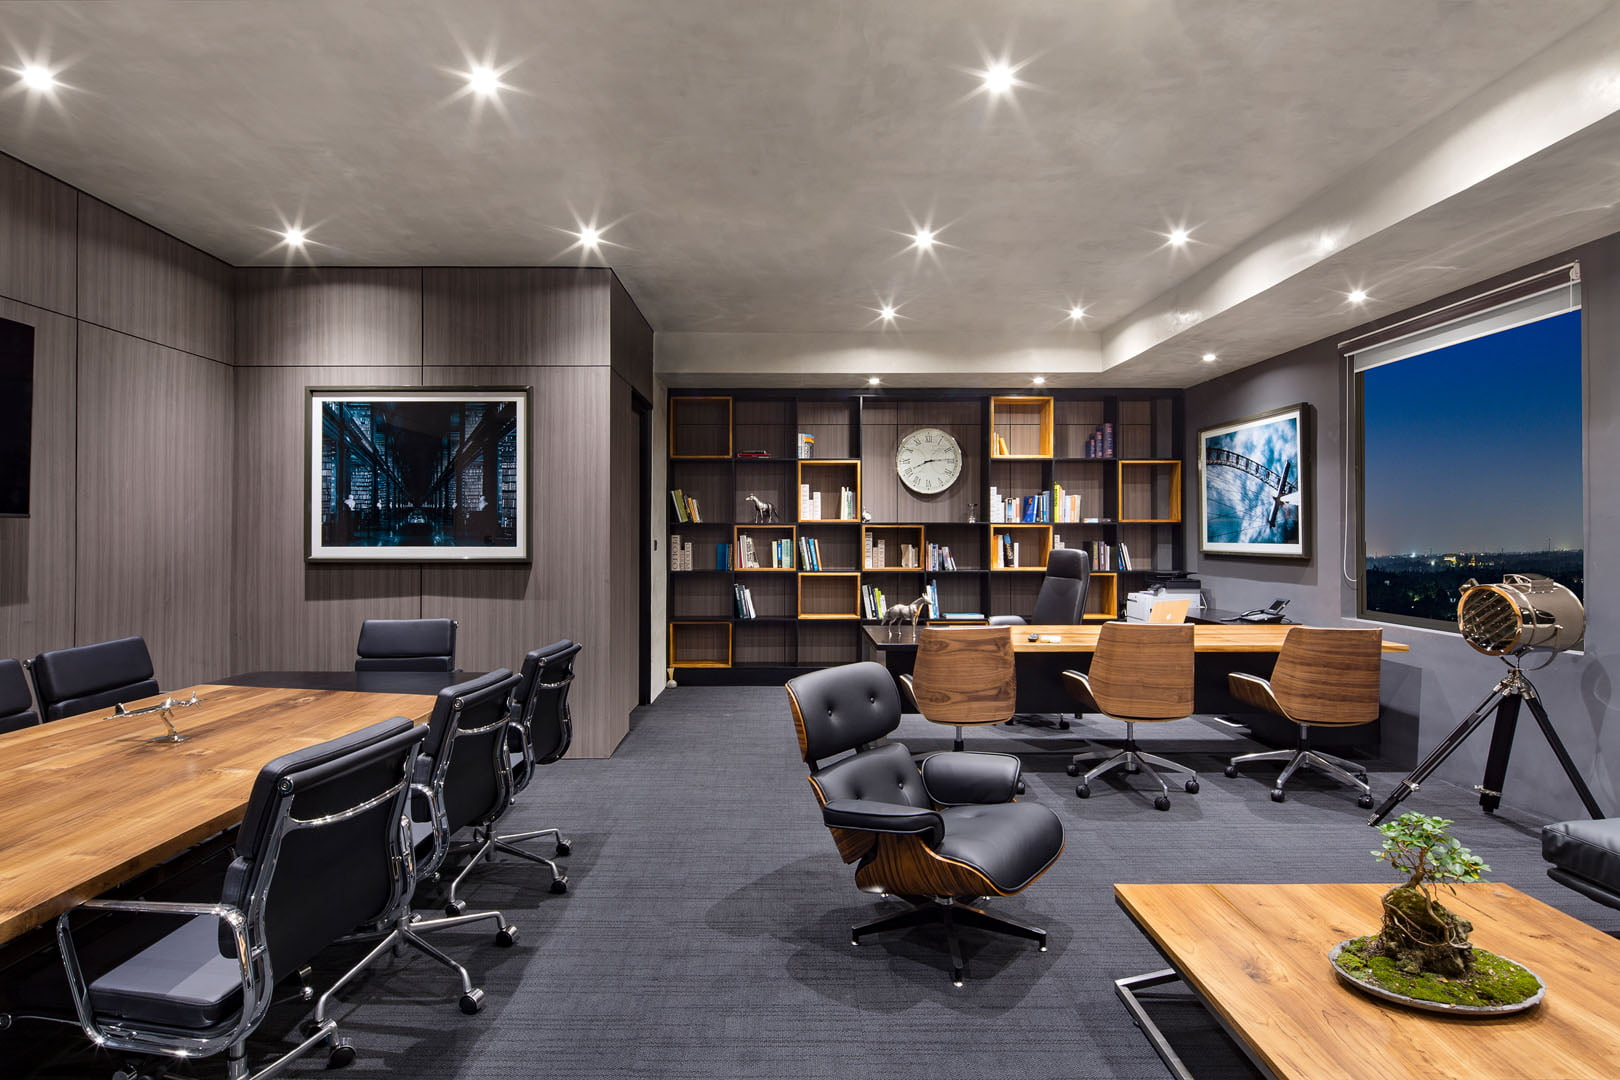 Personalized Office Space Image 11 | Customized Office Interior Designing